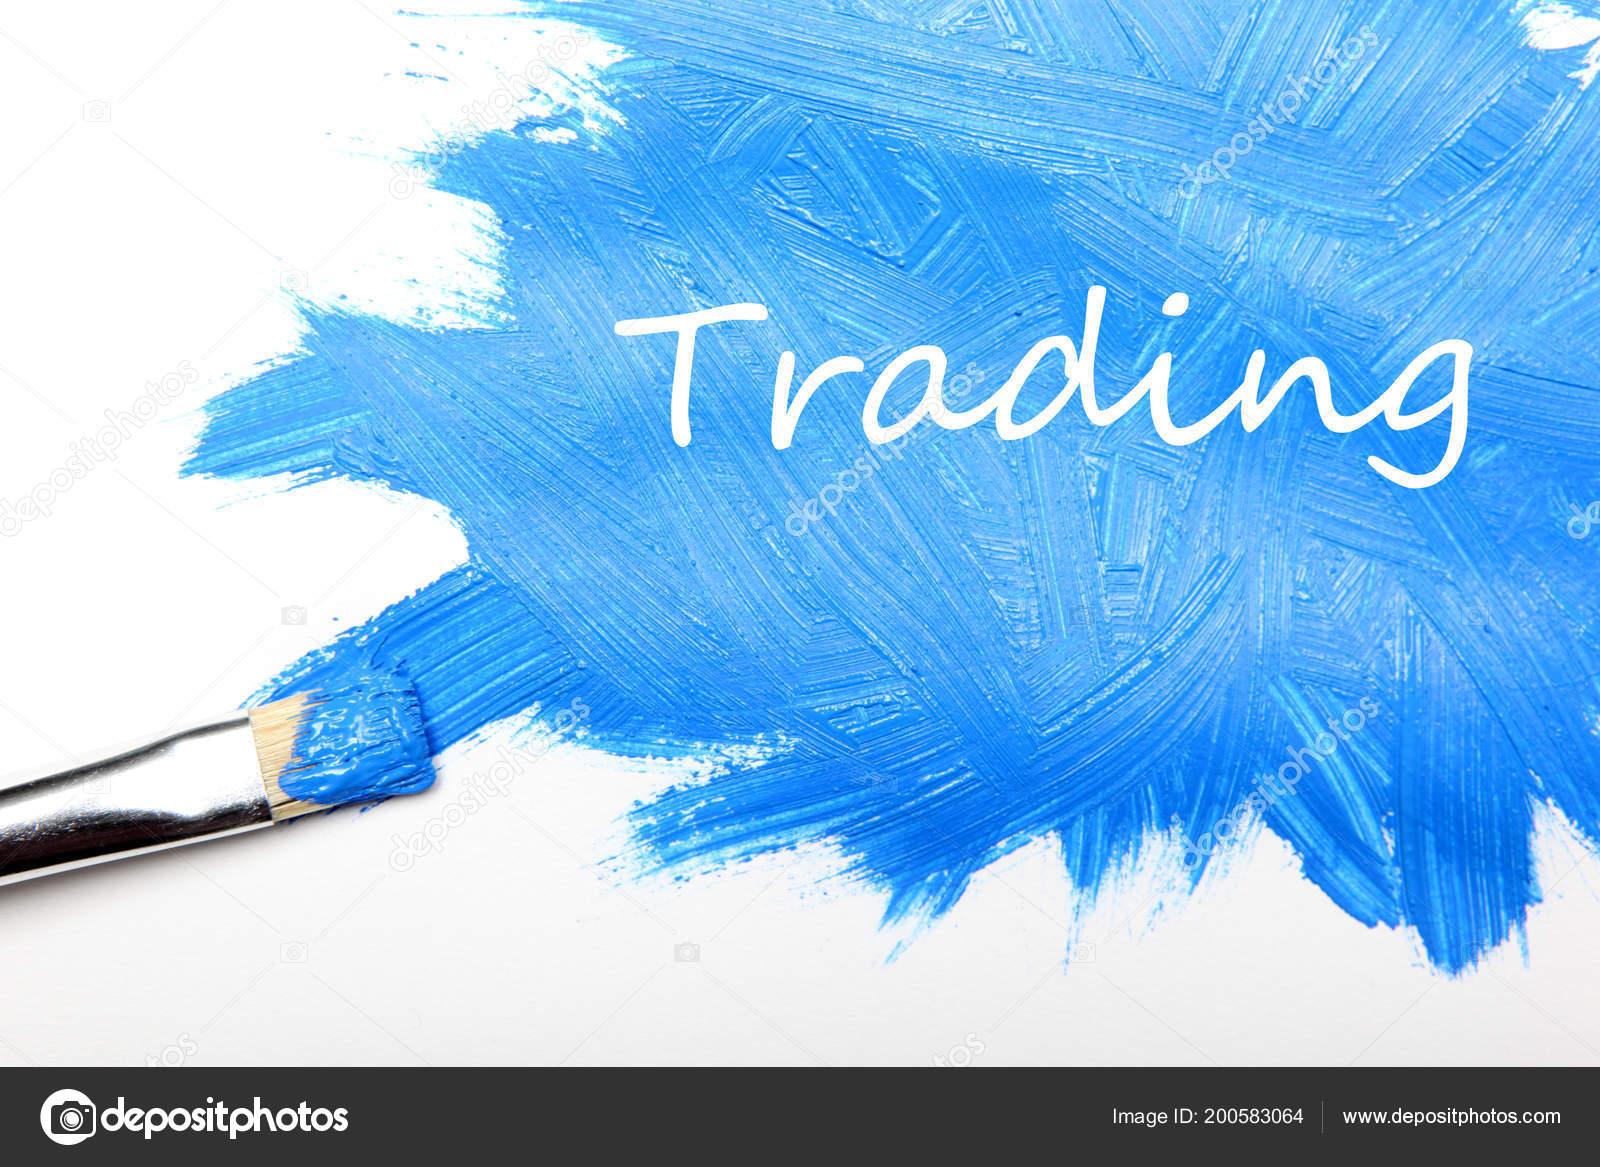 Technical analysis of stocks & commodities the traders' magazine.